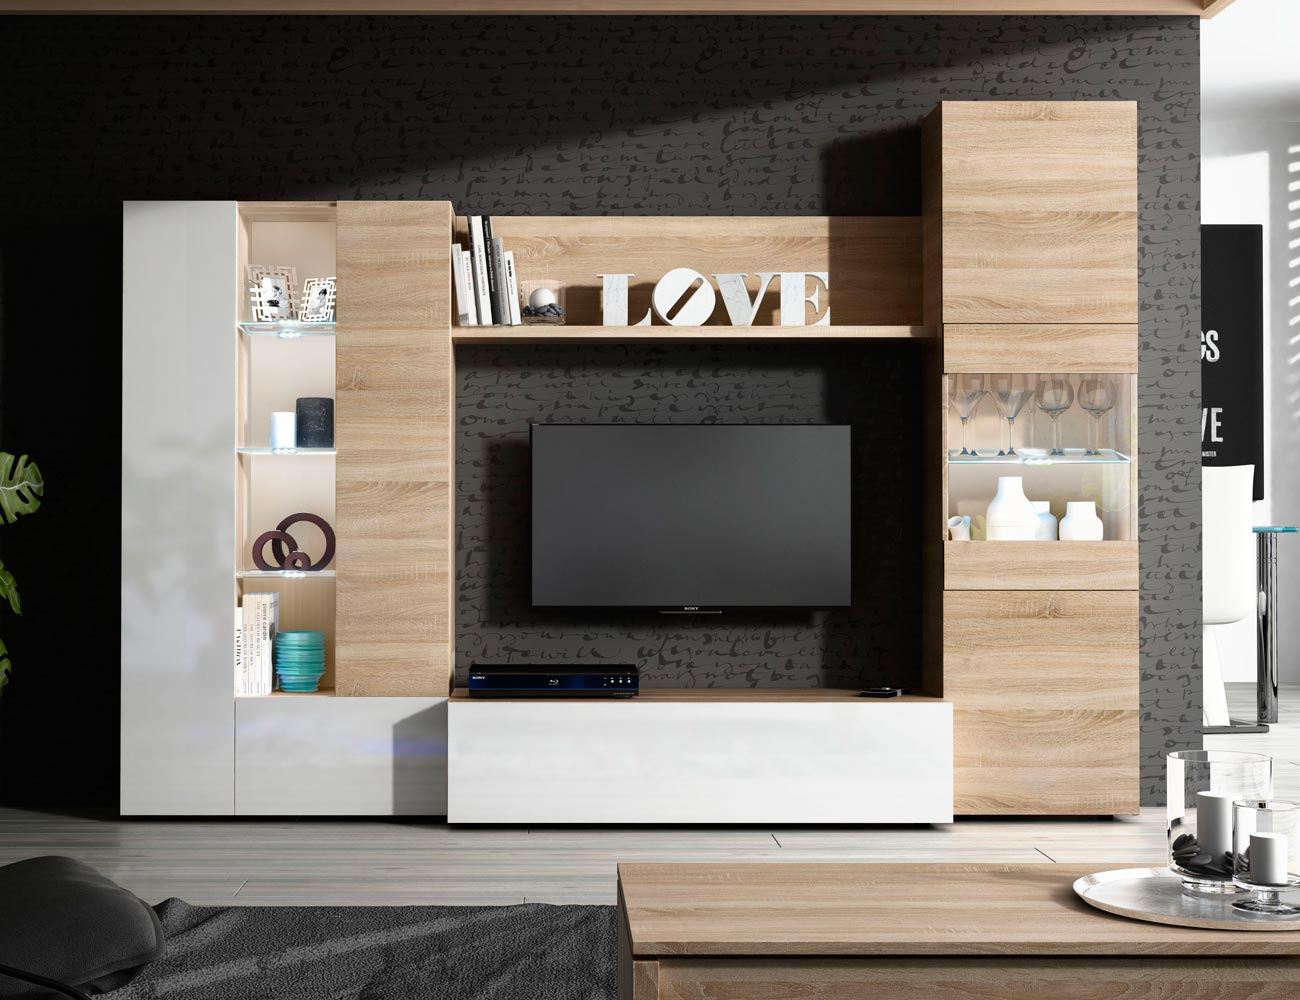 Mueble modular blanco salon 20170808071222 for Salon comedor blanco